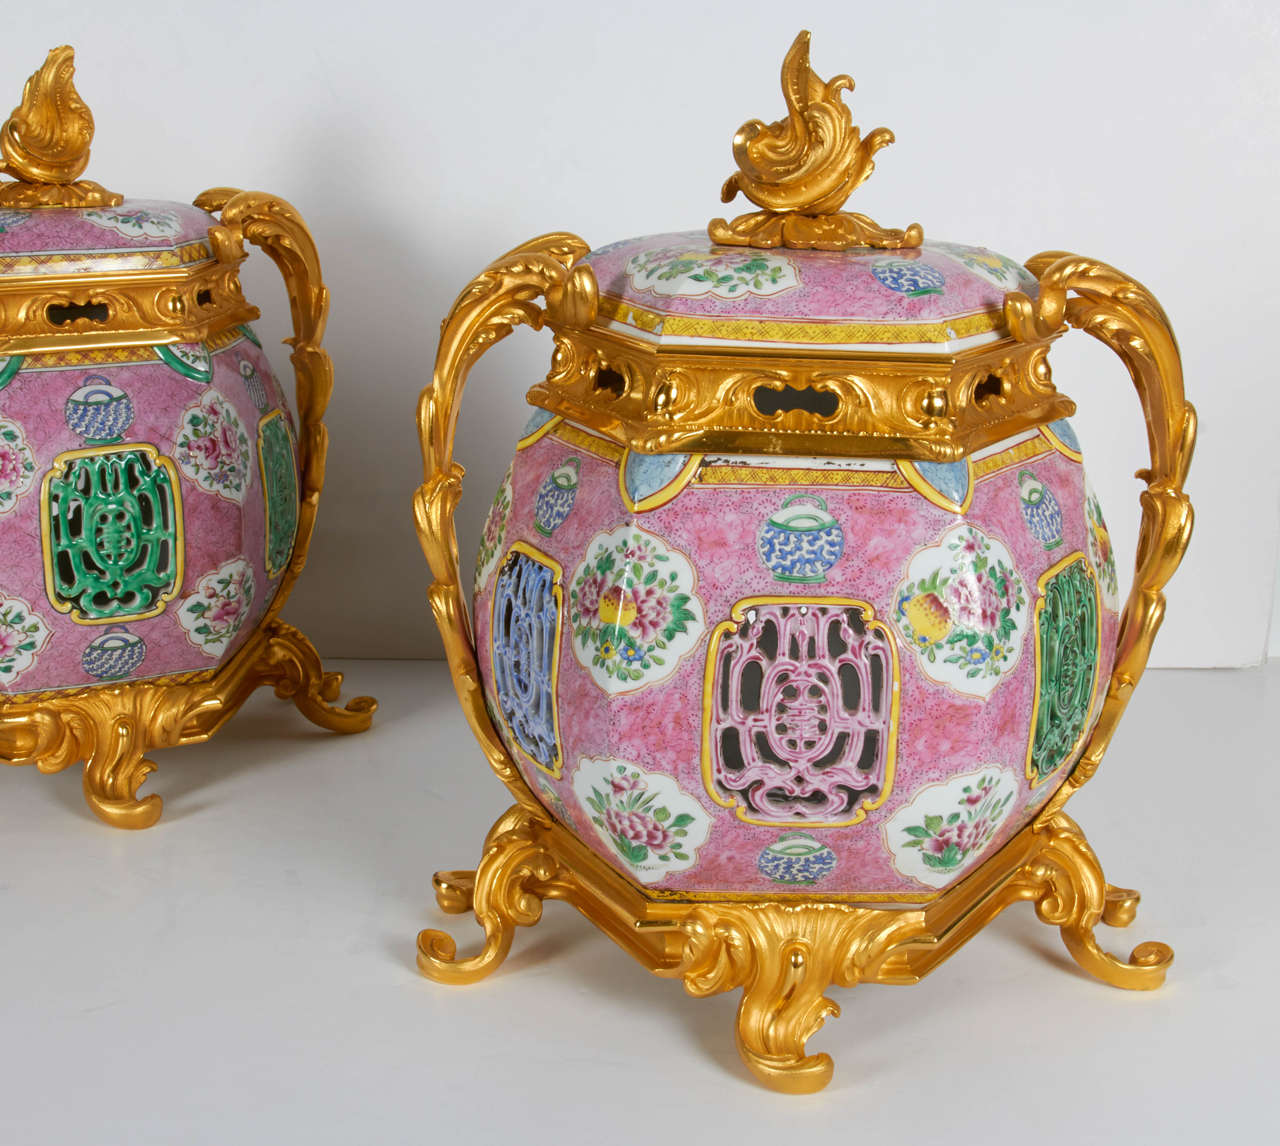 A very fine pair of antique Chinese porcelain and Louis XV-Louis XVI transitional, French doré bronze mounted covered potpourri/urns. These beautiful and quite decorative covered vases are truly spectacular in person and pretty large in scale. The